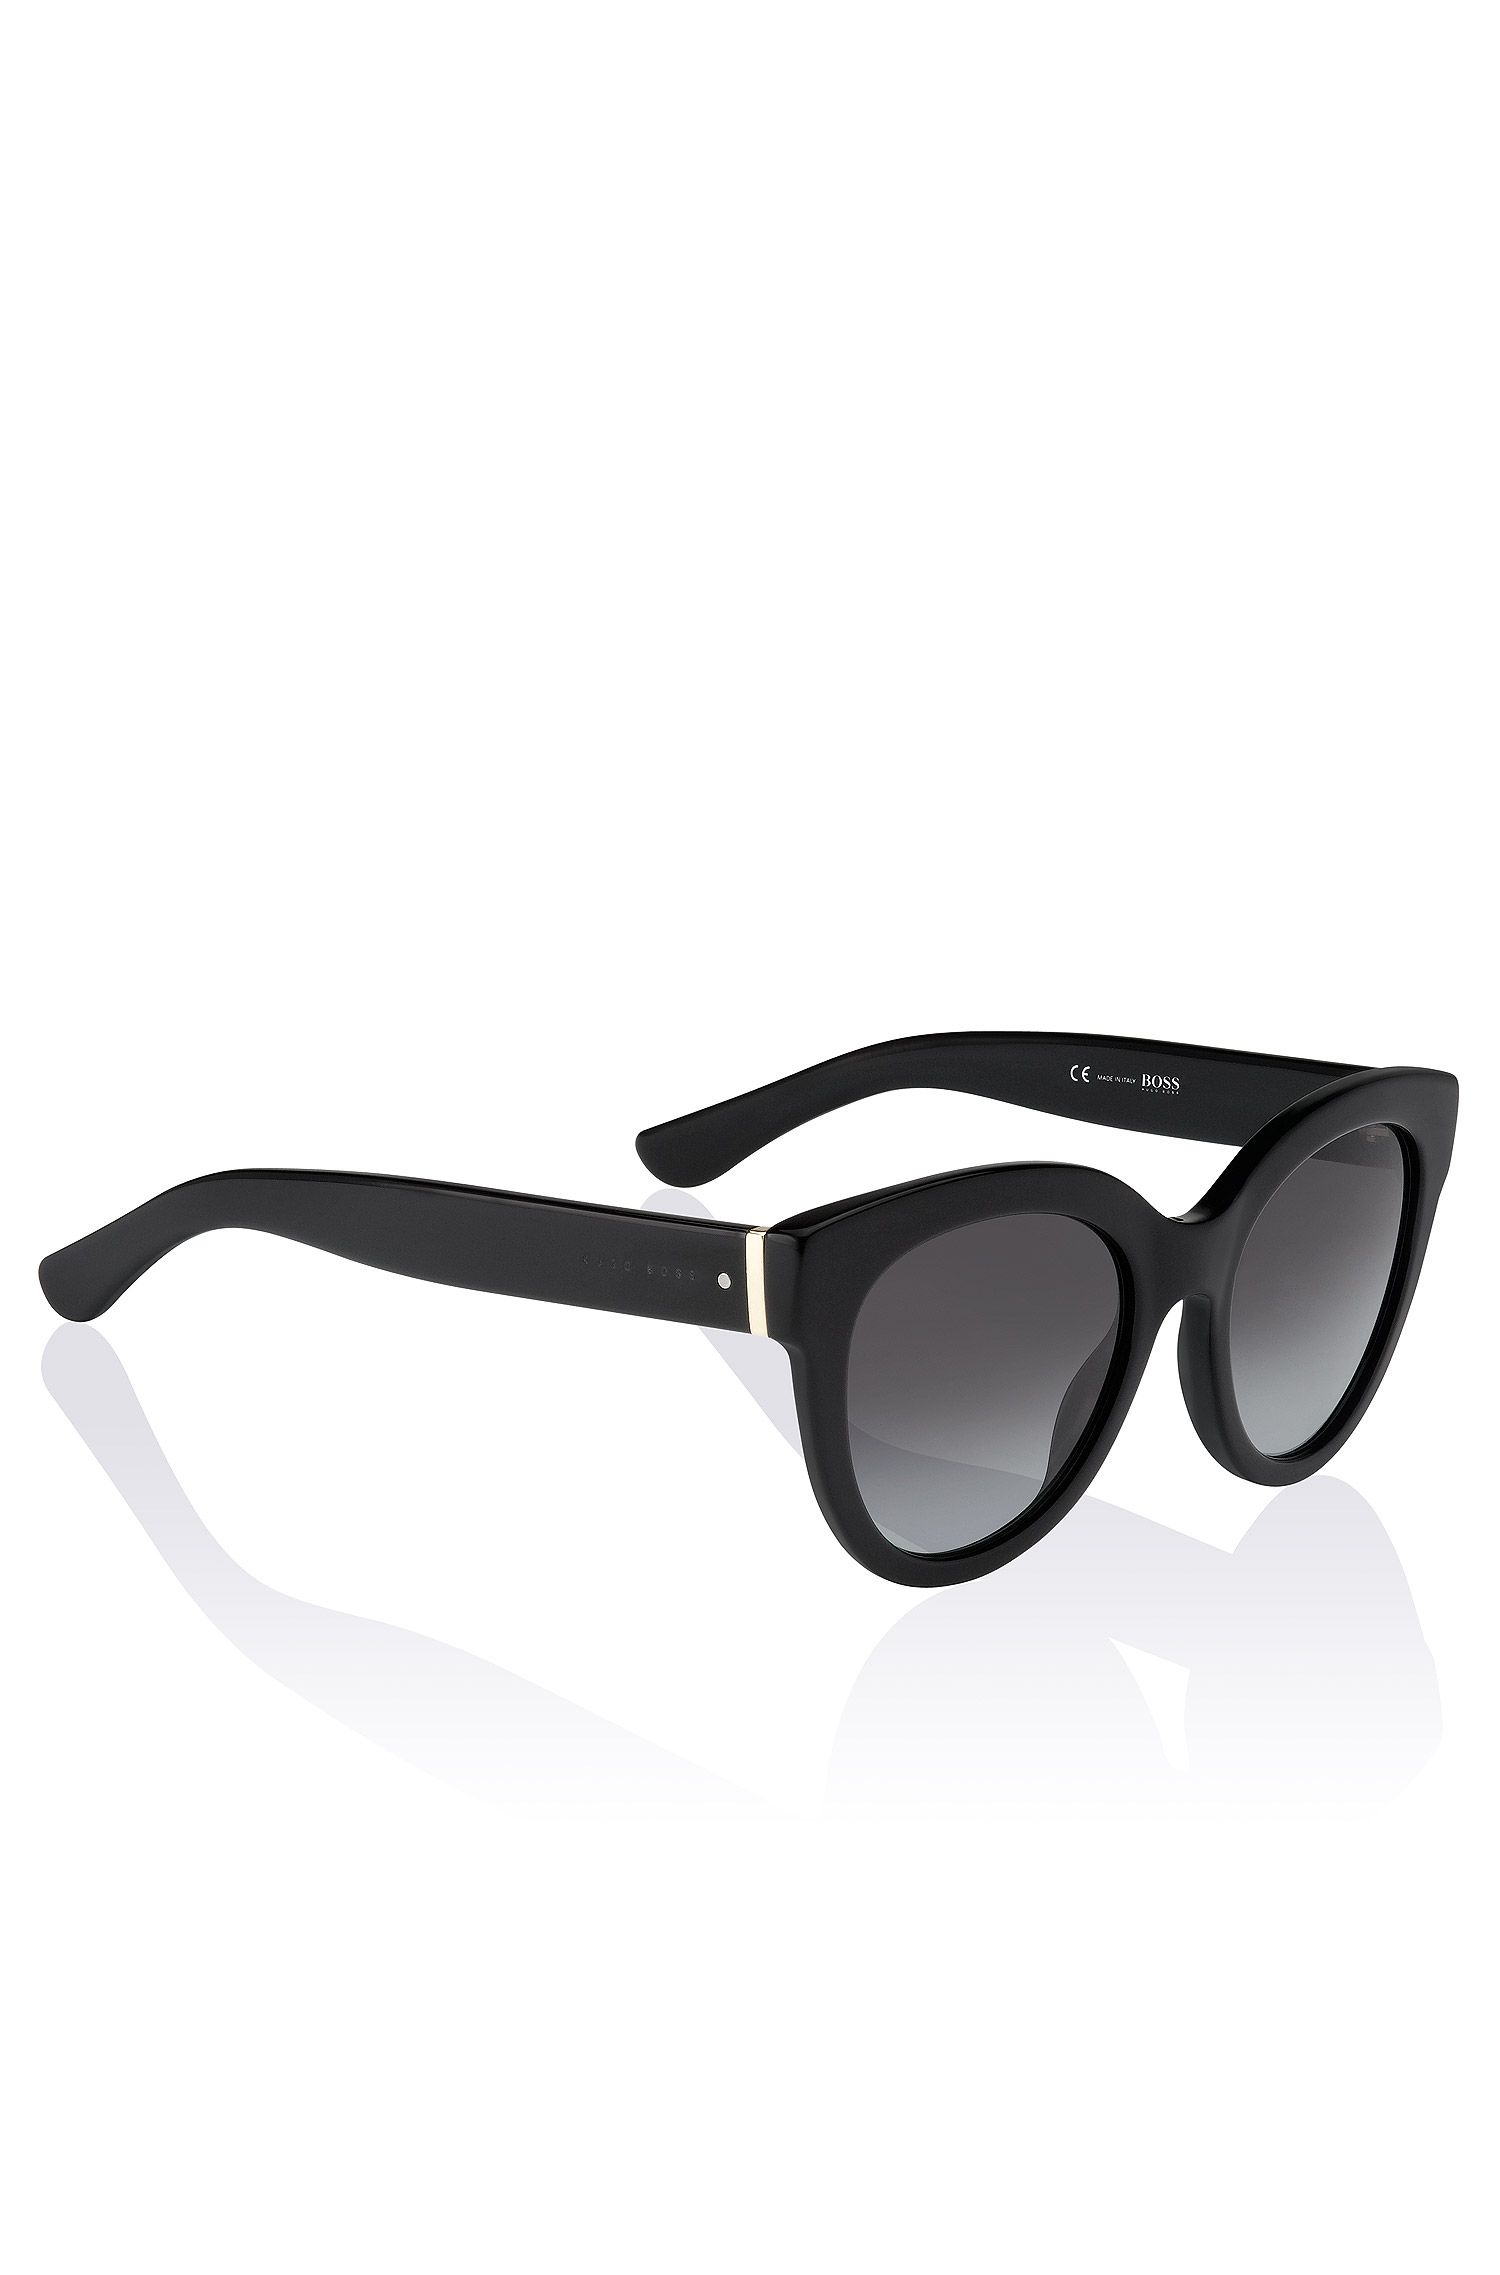 Sunglasses 'BOSS 0675' in acetate and metal